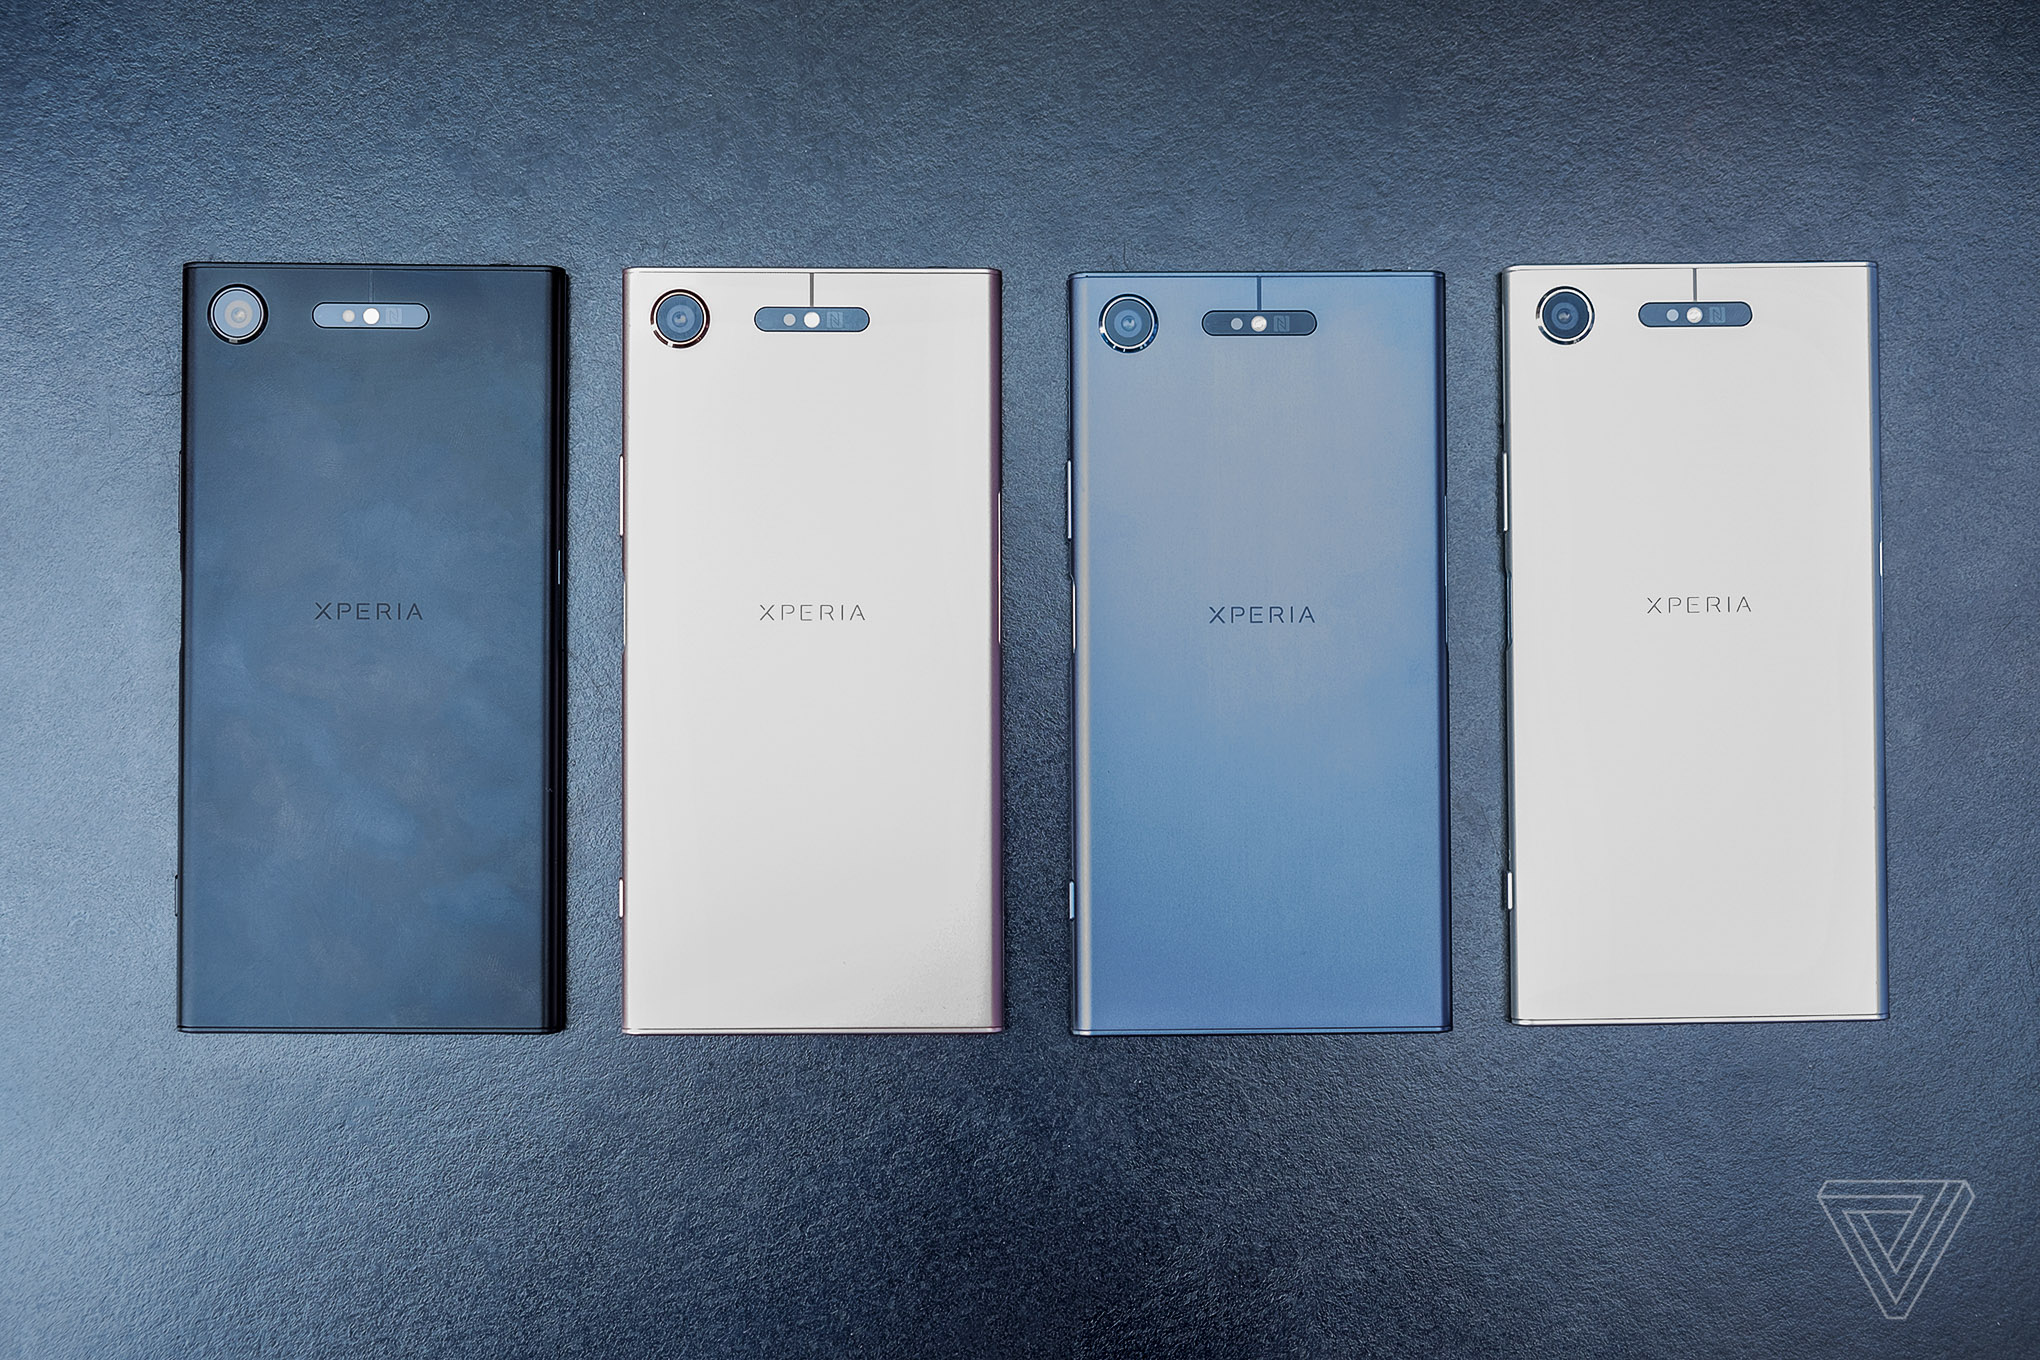 Sony S Xperia Xz1 And Xz1 Compact Have Refreshed Designs